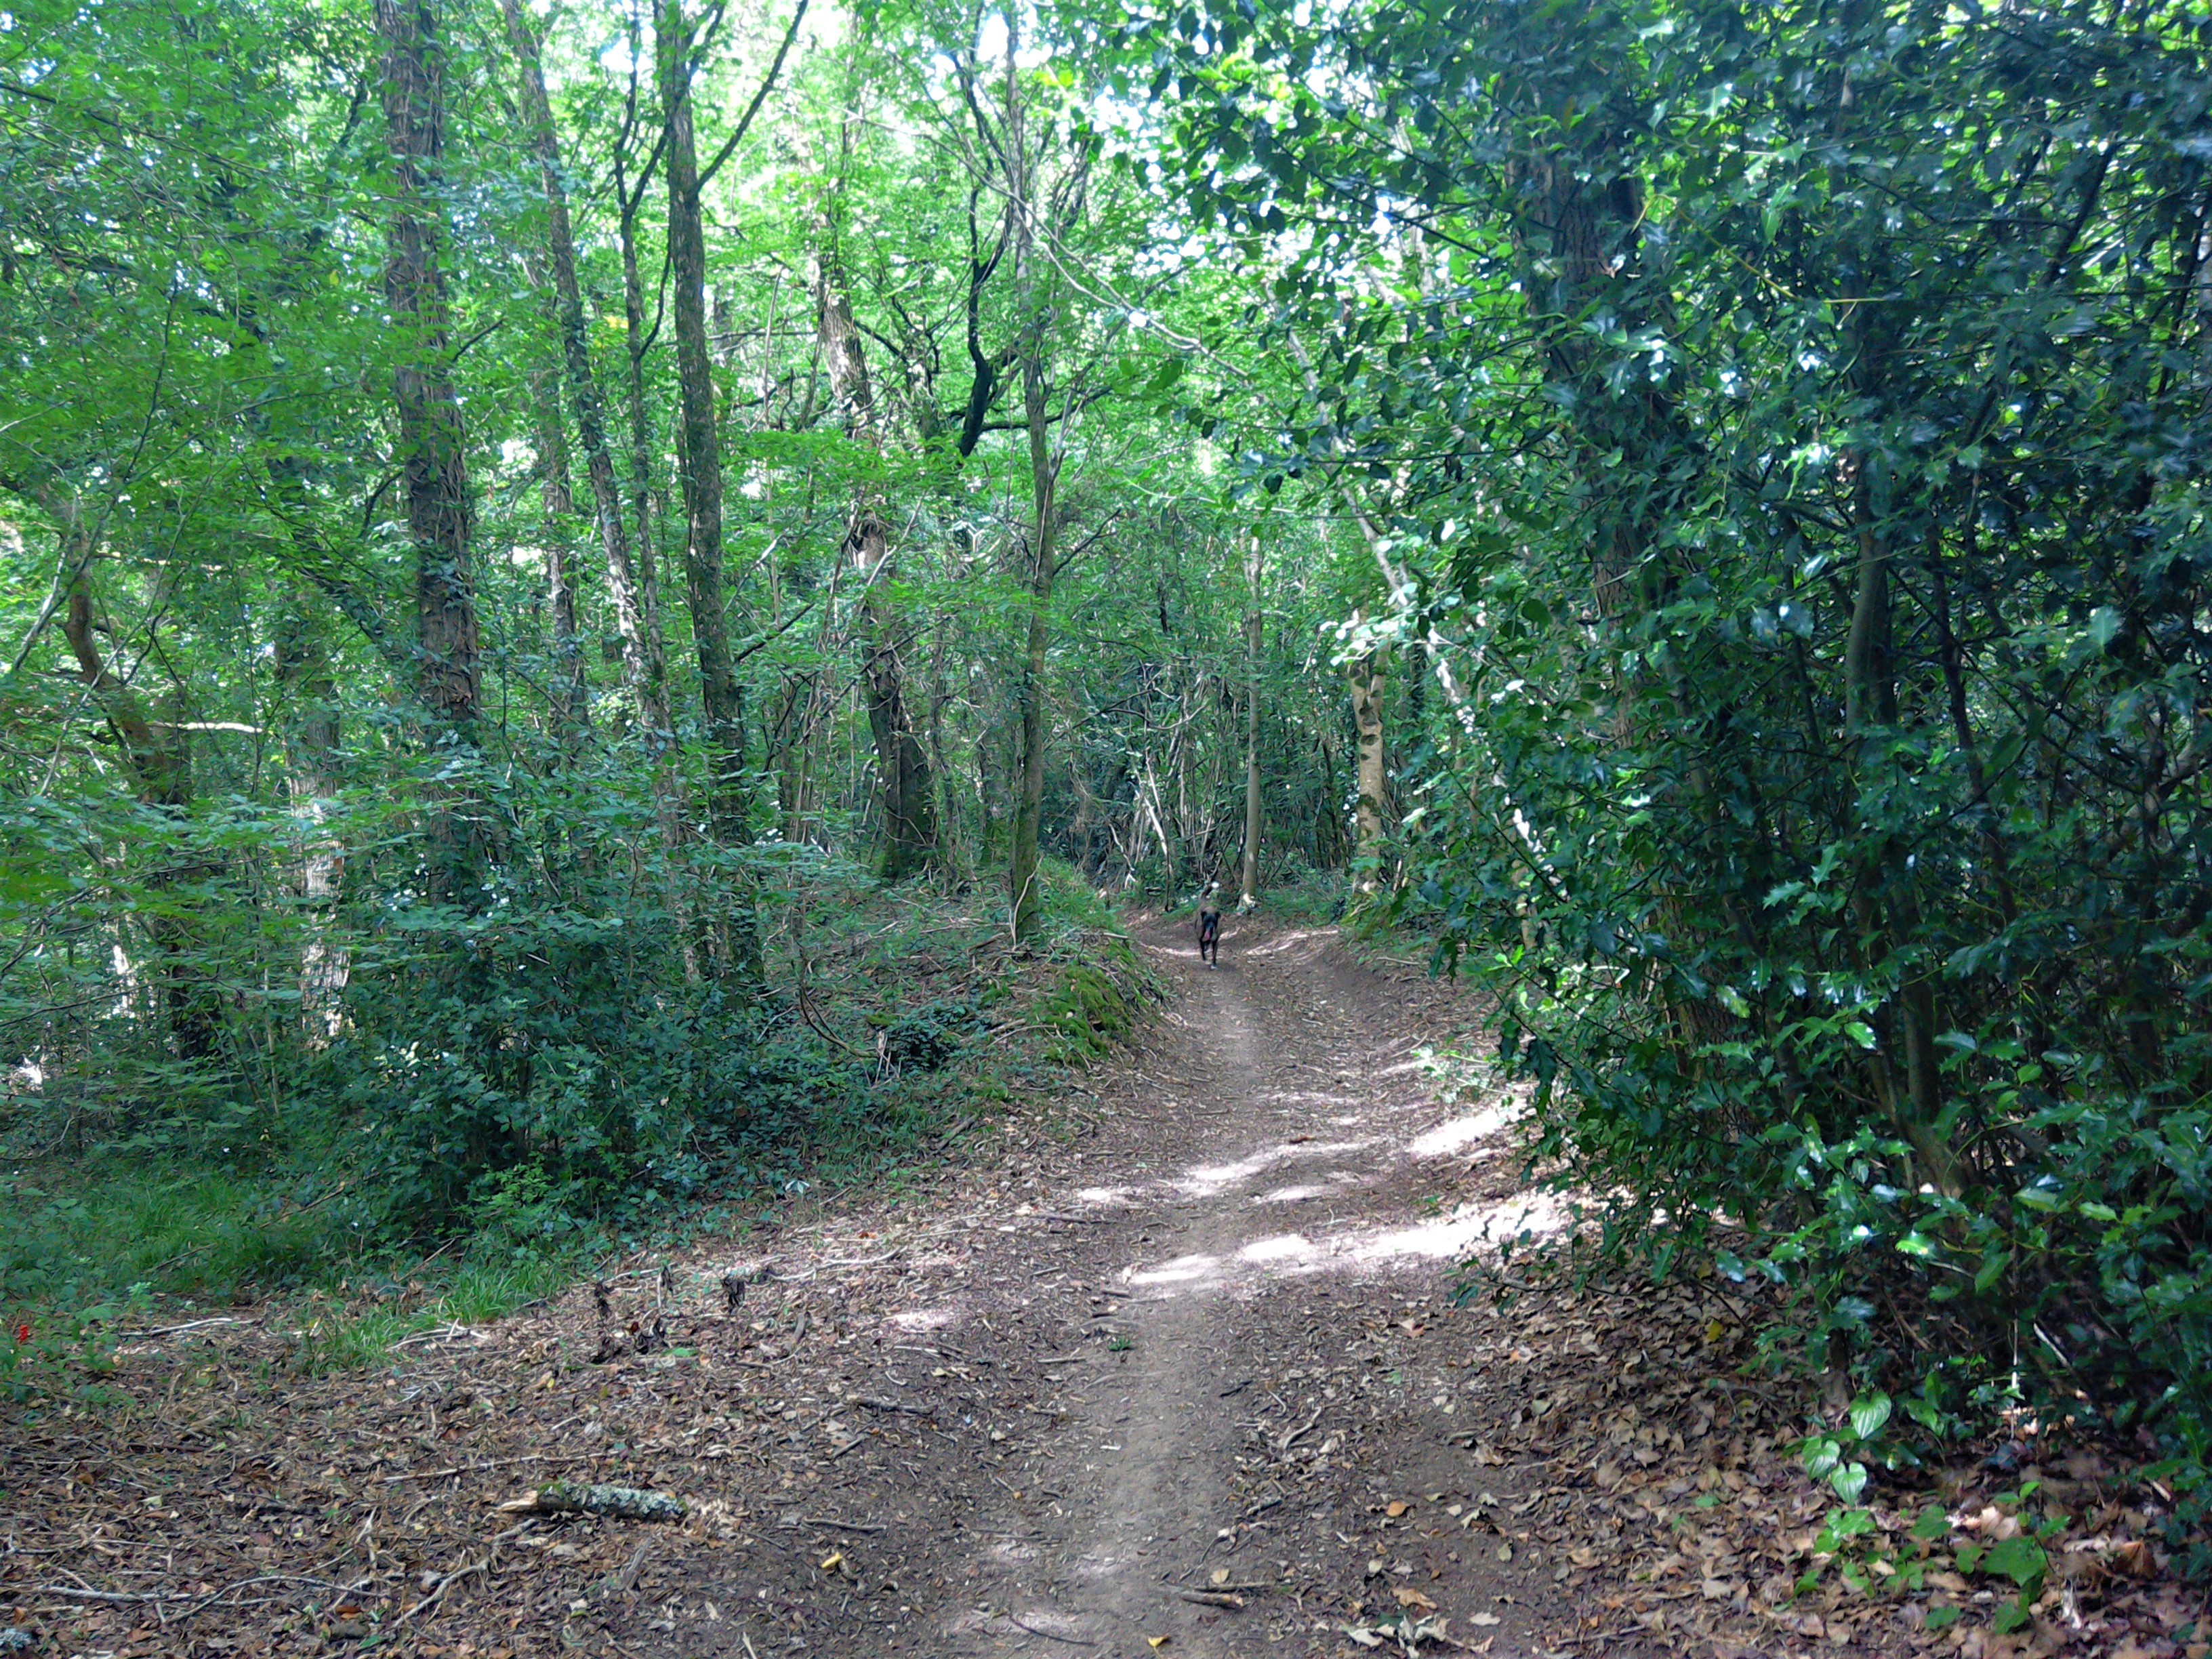 Walks through the woods between Lénault and Saint Jean le Blanc, Normandy, France